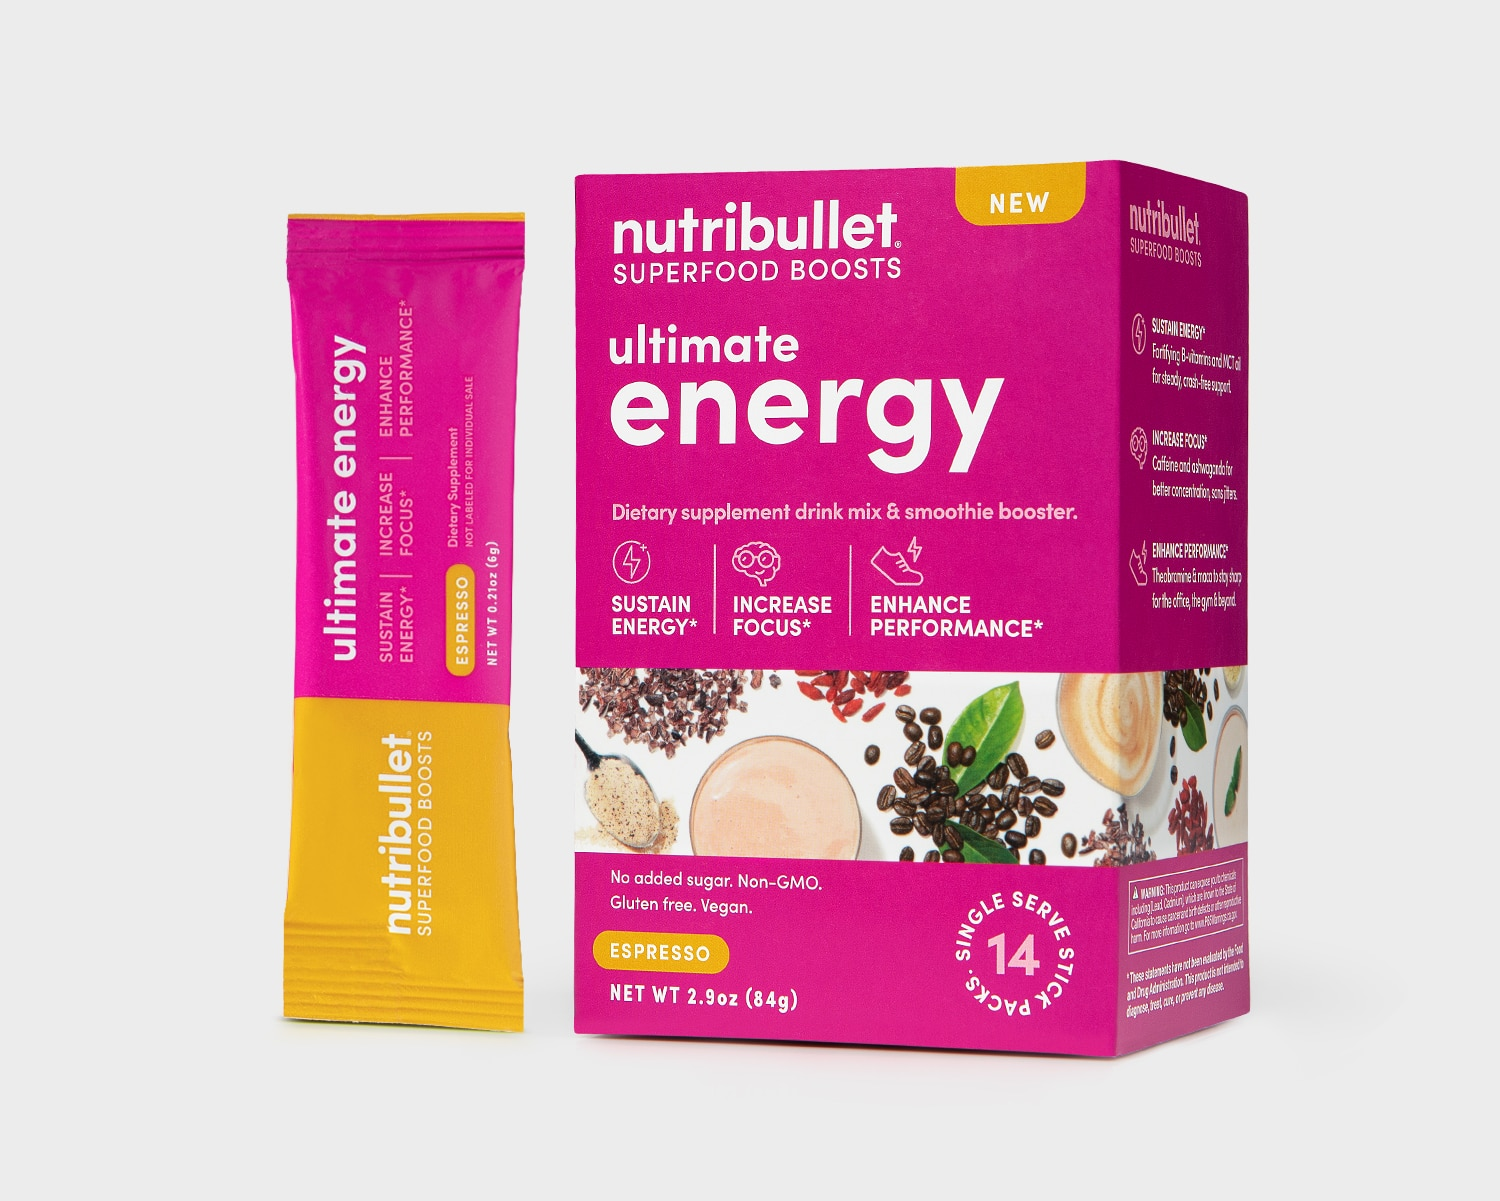 NutriBullet Ultimate Energy pink box espresso flavor with beans, vegetables, powder label and a packet of '14 stick packs'